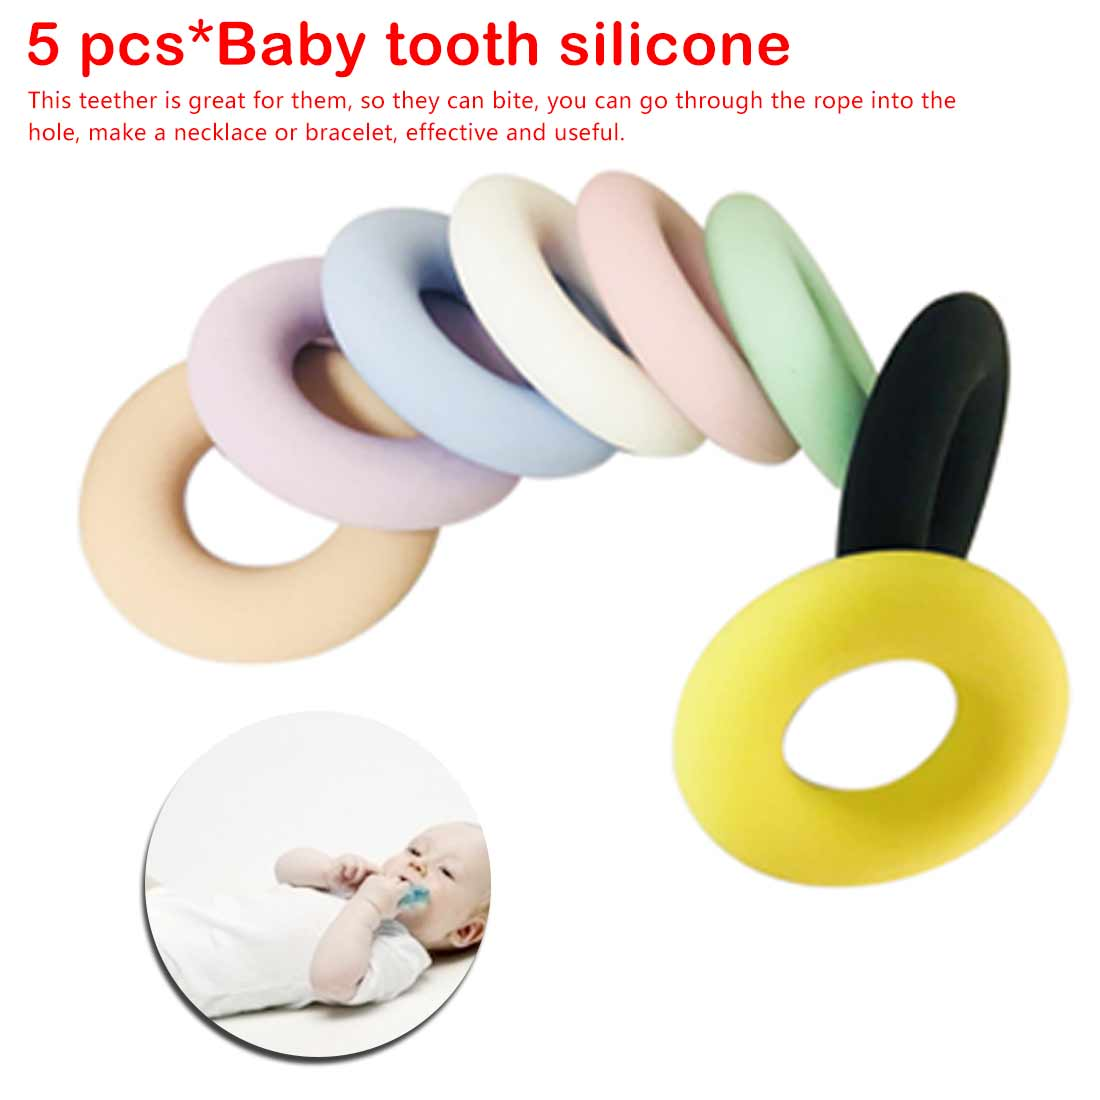 5pcs Donut  Silicone Beads Pendant Teether Necklace Teething Chewing Cute Baby Toy Chewable Jewelry Pacifier Clip Holder